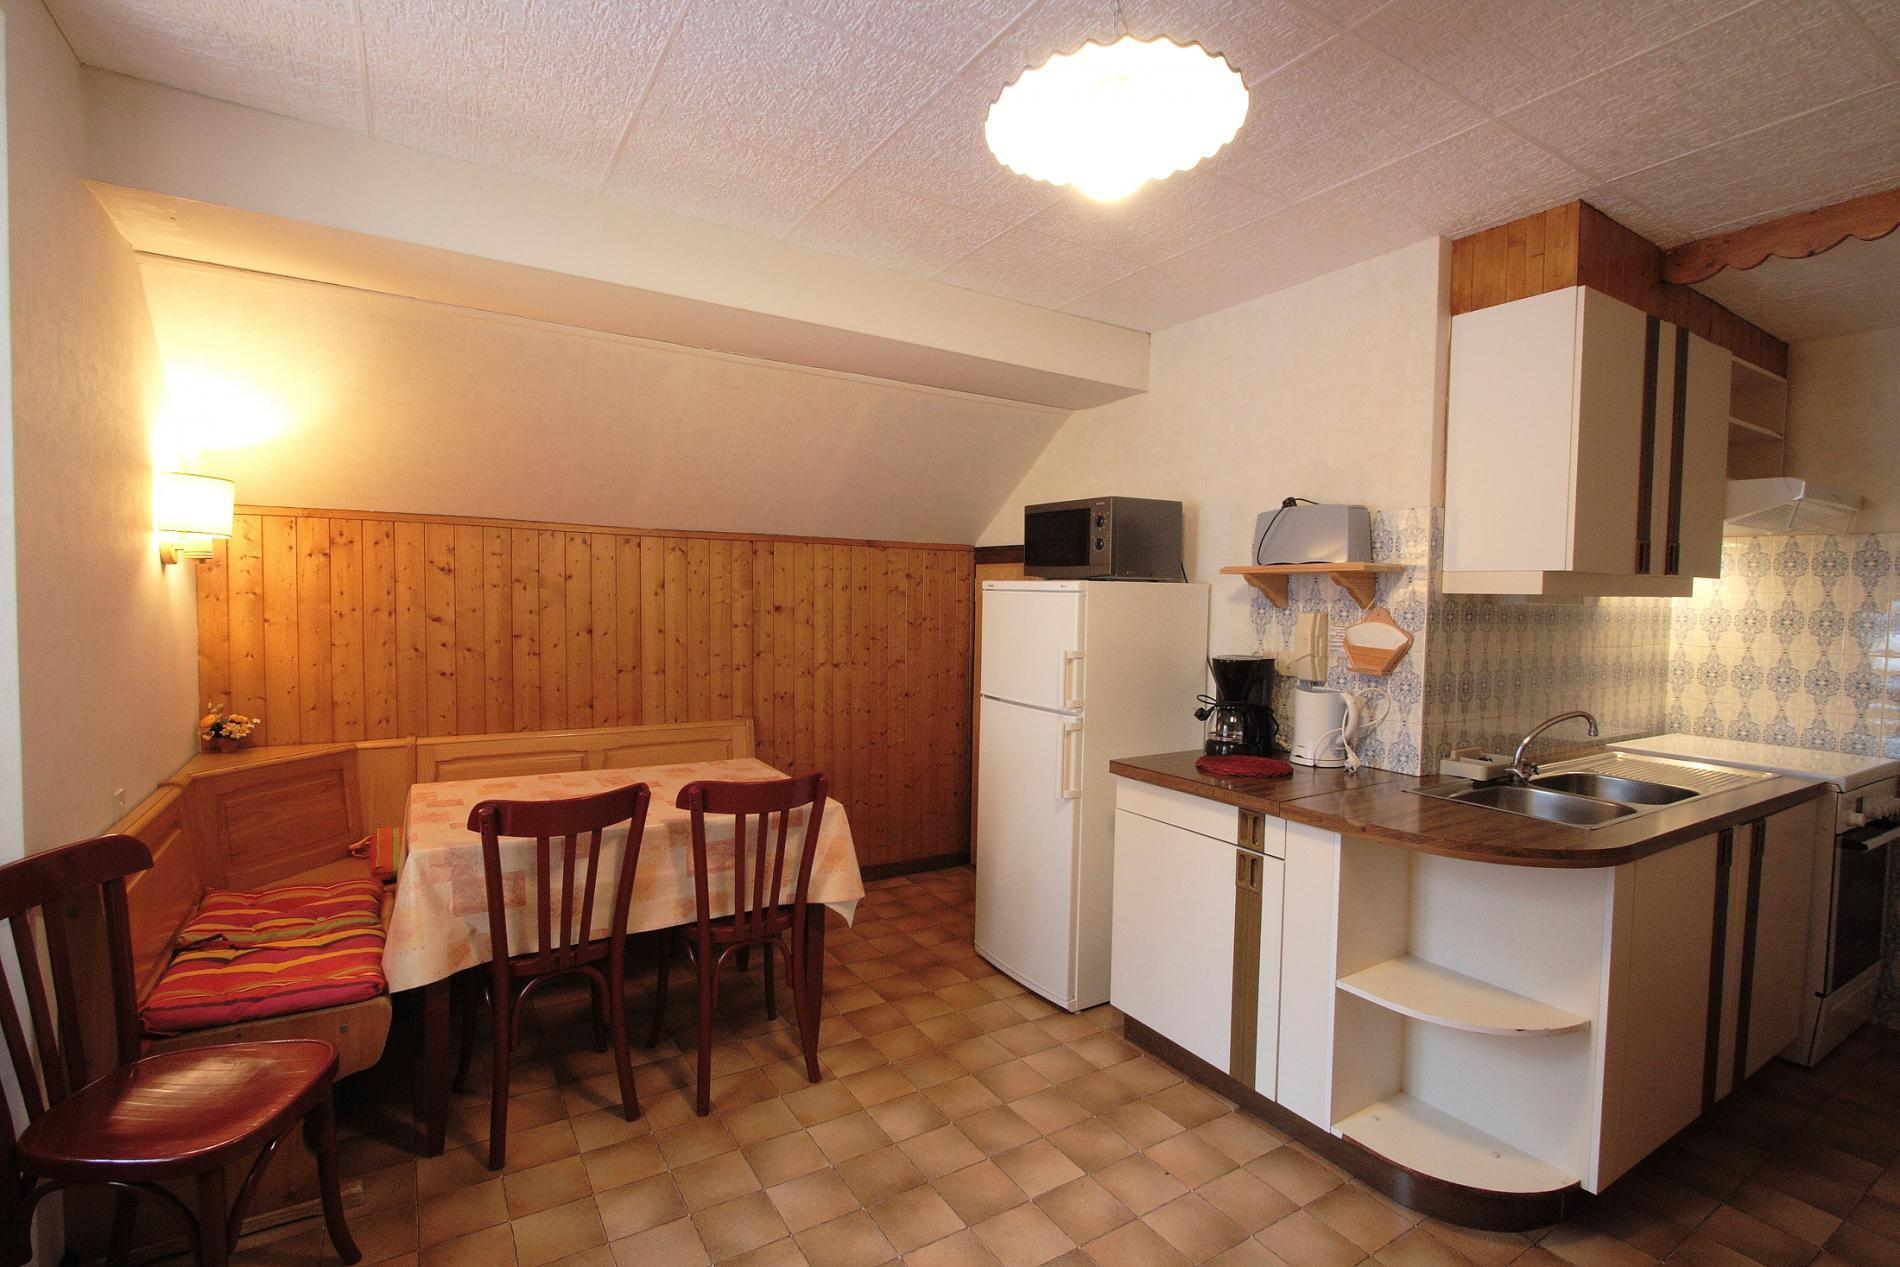 Apartment paquerette - 50 m² - 2 bedrooms - 5 pers - 2nd floor - Terrace